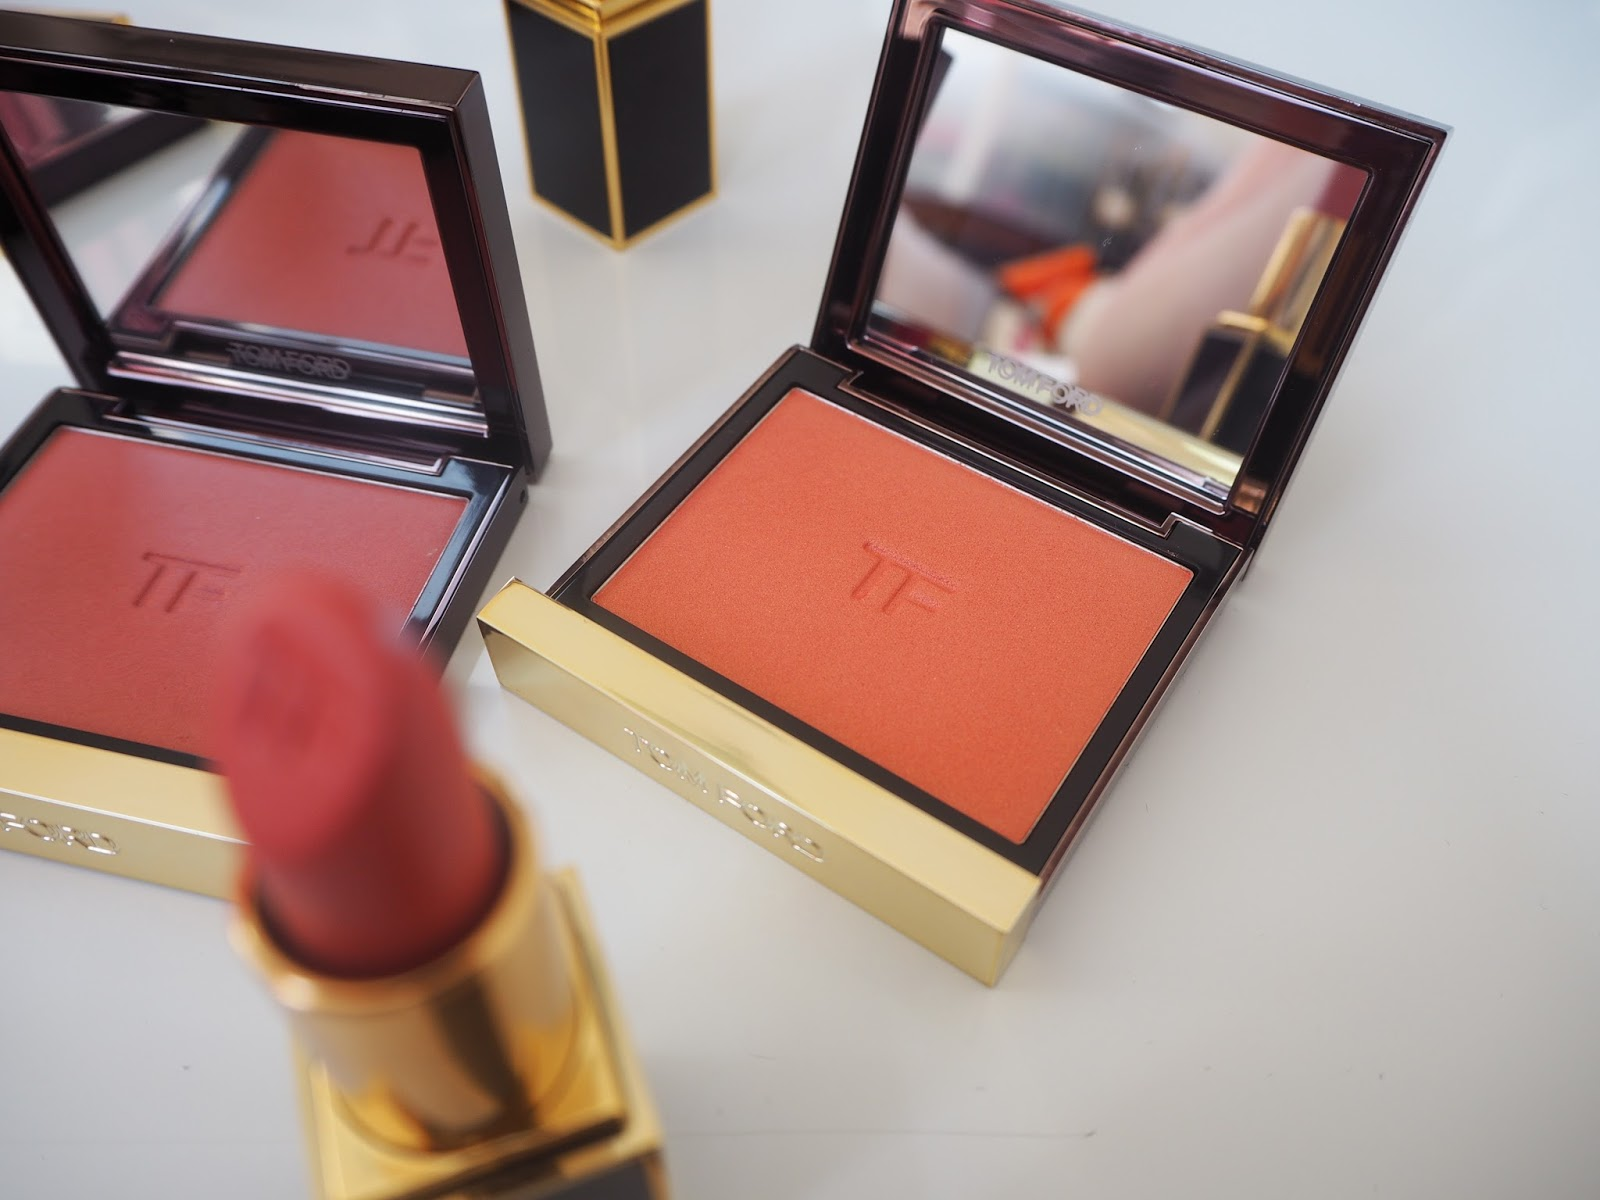 Tom Ford Cheek Color Blush in Love Lust